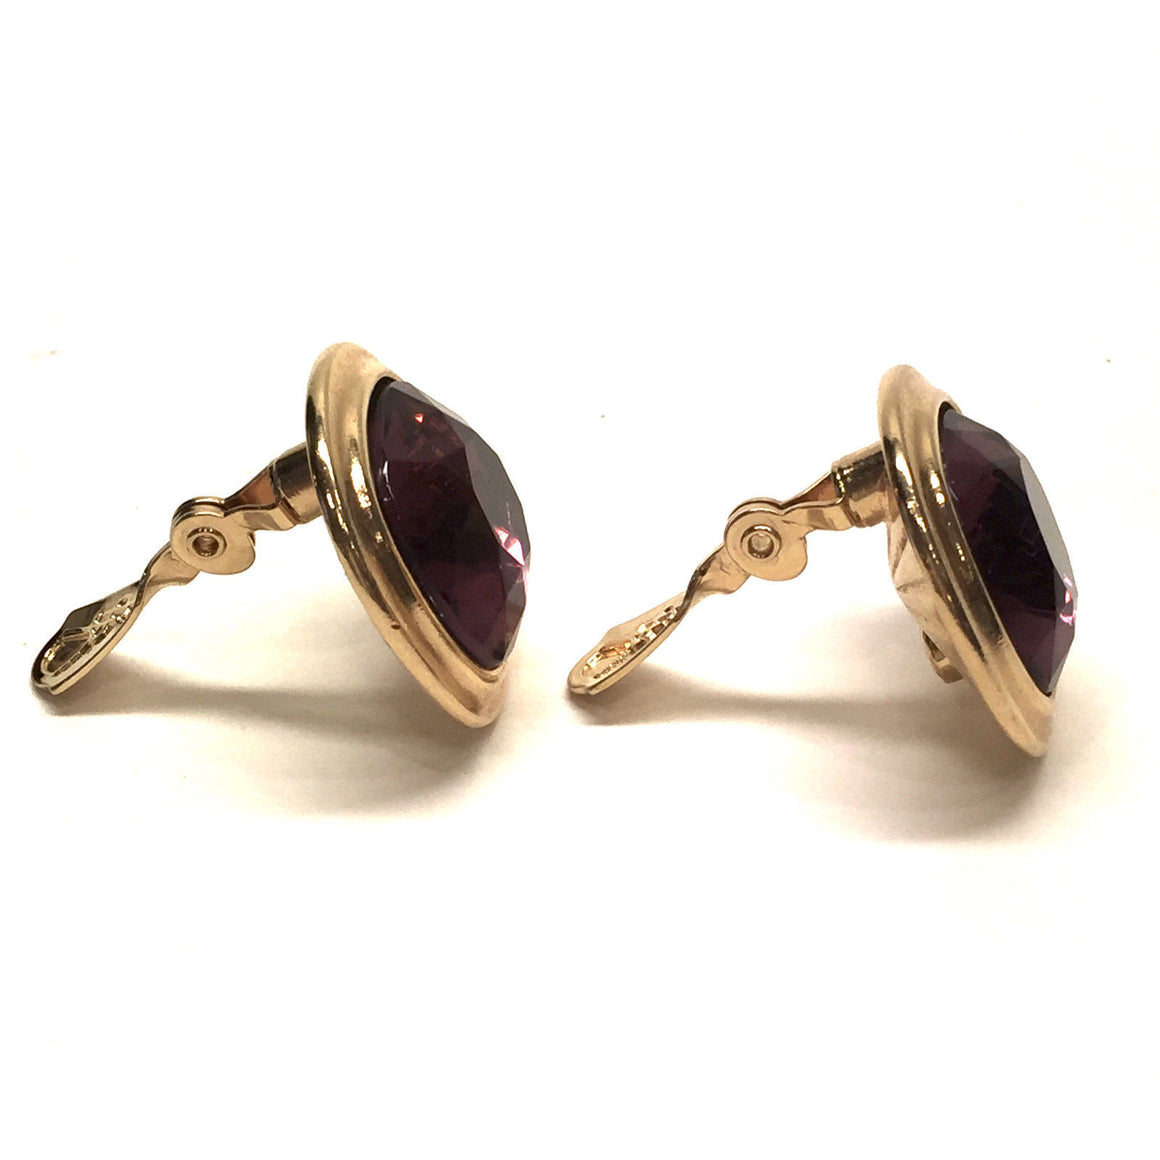 bisbiz.com YVES ST. LAURENT YSL   Vintage Gilt Metal Purple Faceted Crystal Clip-On Earrings - Bis Luxury Resale